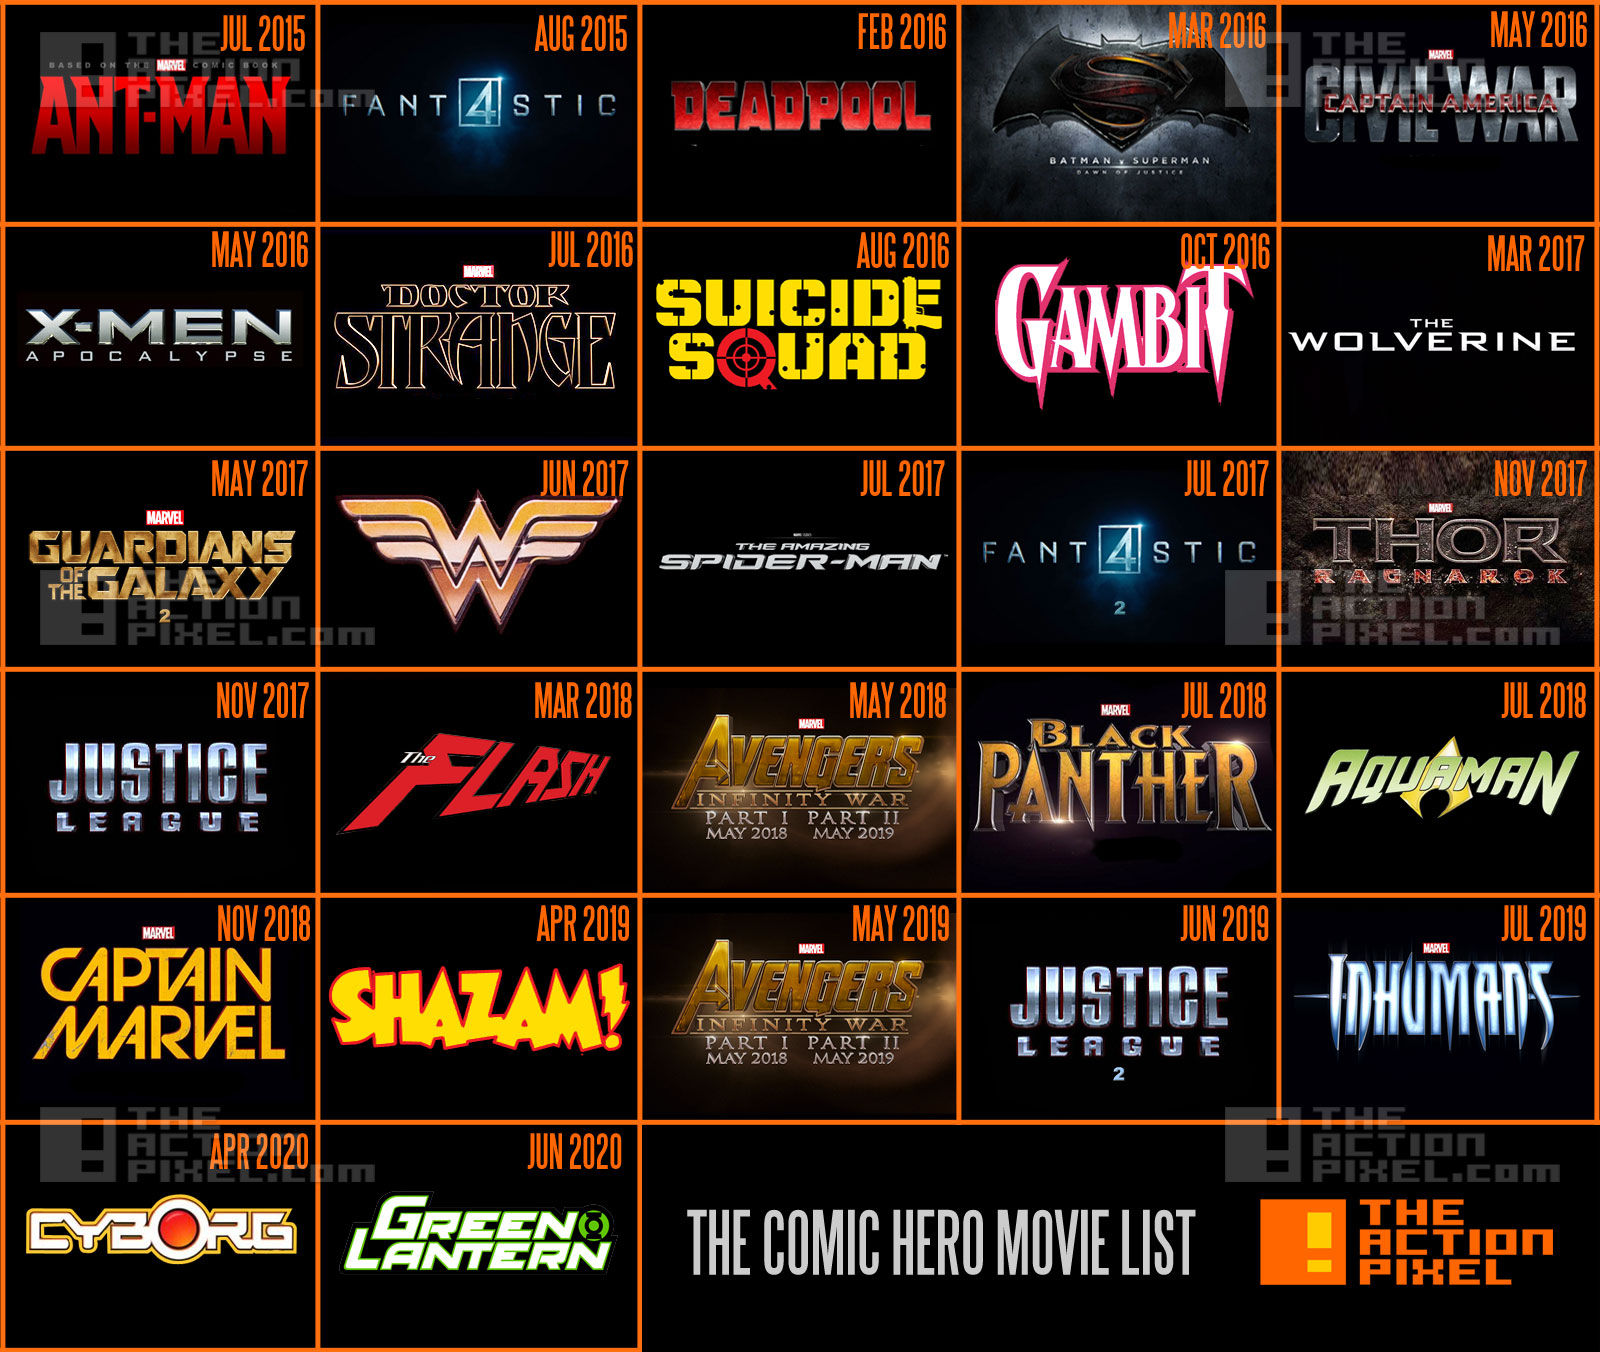 marvel film releases 2015